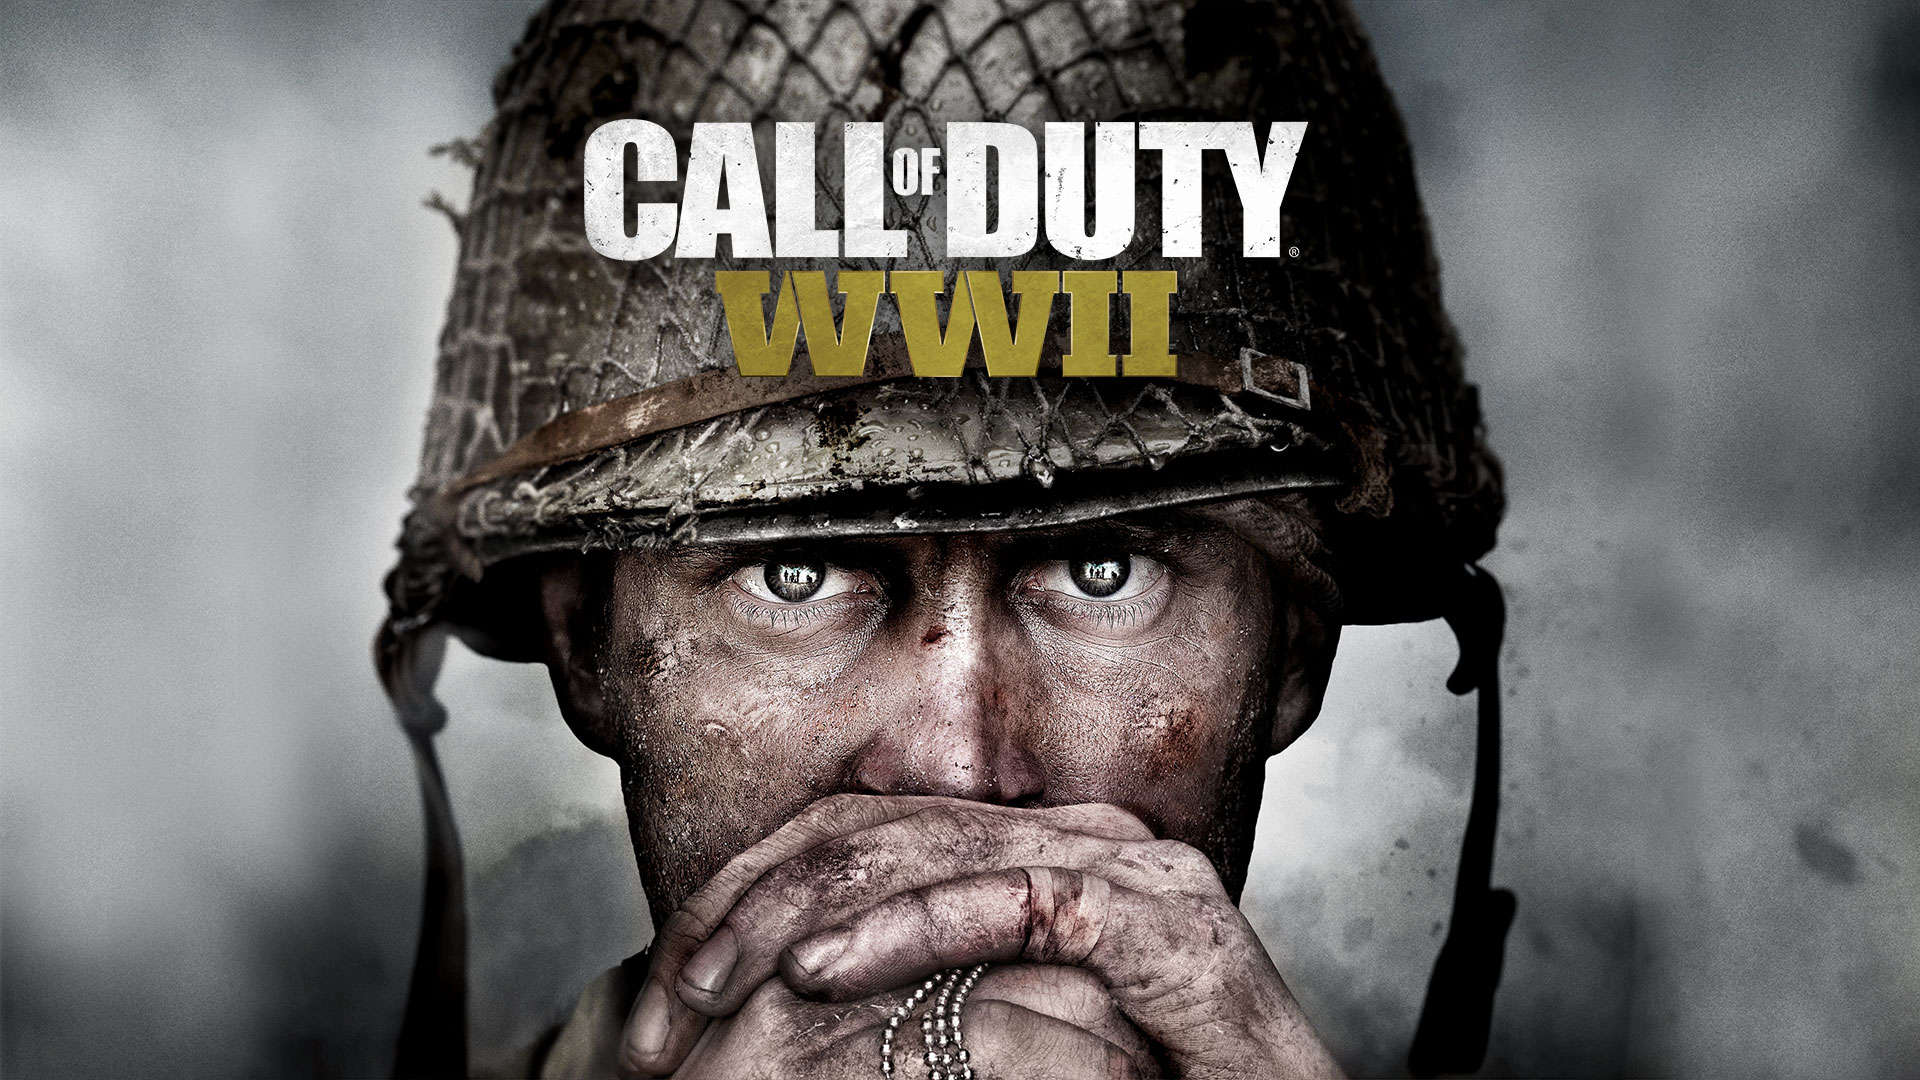 Requisitos de Call of Duty: WWII